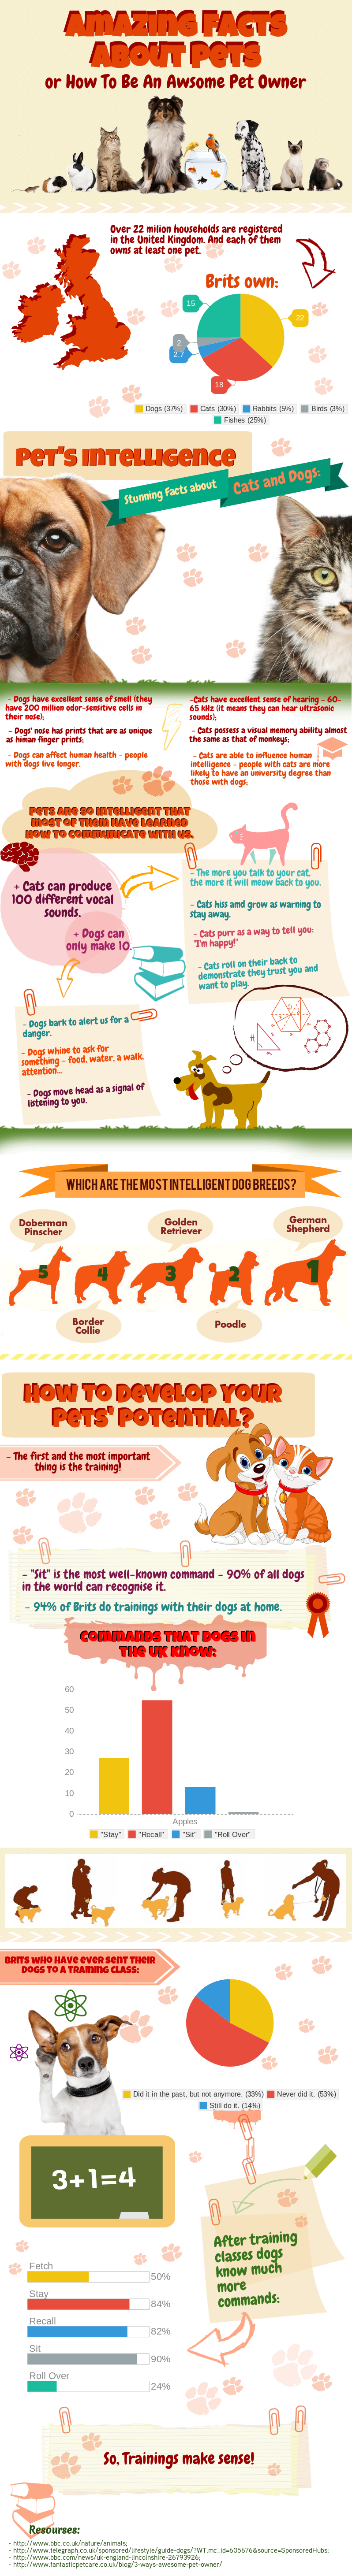 Infographic: Amazing Facts About Pets